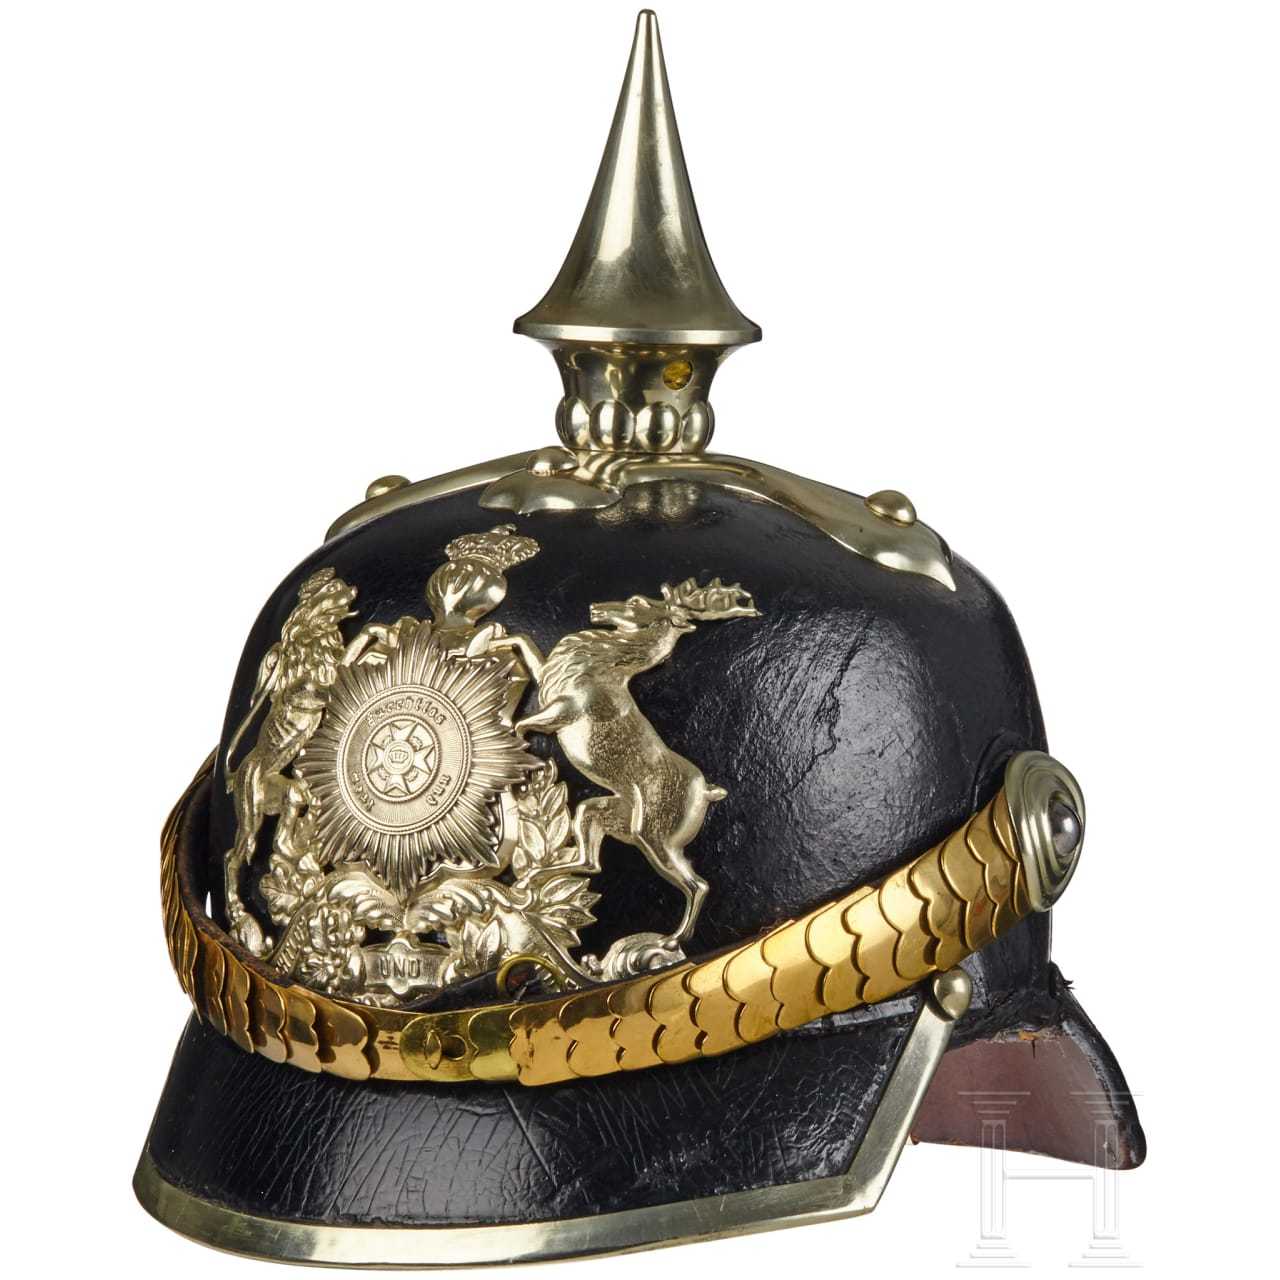 A Model 67 Württemberg Other Ranks 26th Dragoon Helmet